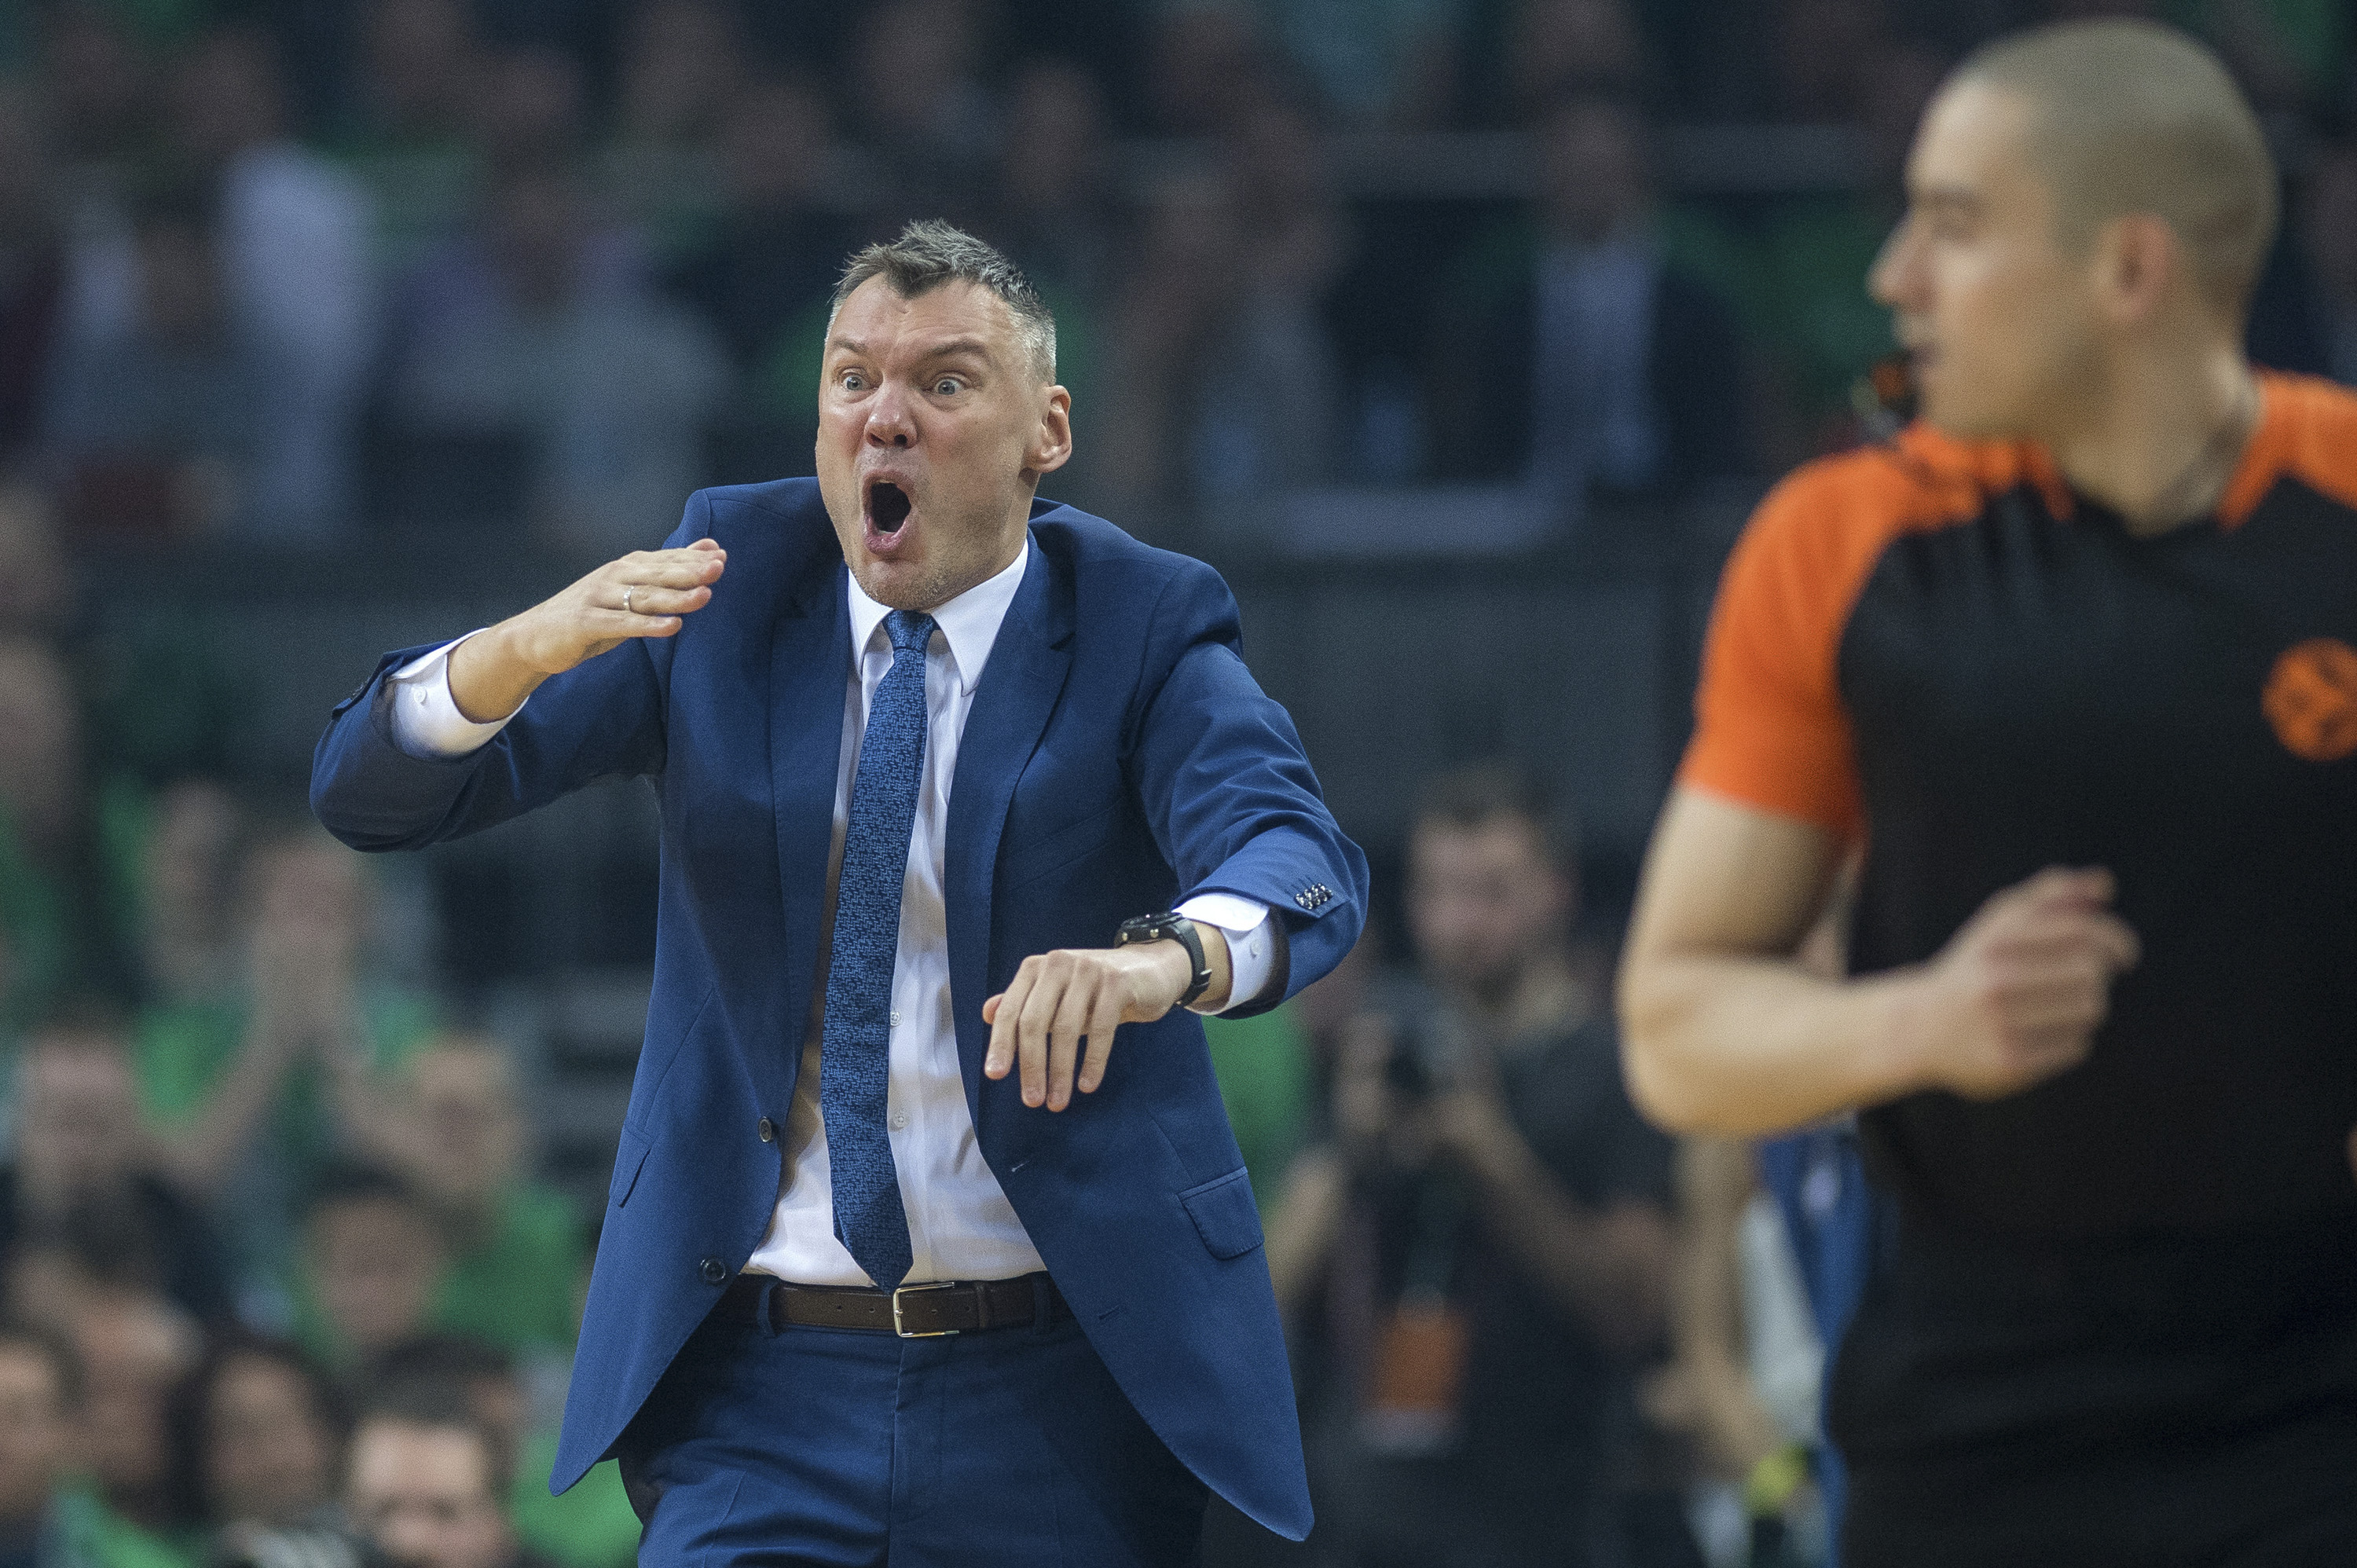 BEIJING, April 27, 2018  Head coach of Zalgiris Kaunas Sarunas Jasikevicius (L) reacts during the fourth playoff of the Euroleague between Zalgiris Kaunas from Lithuania and Olympiakos Piraeus from Greece in Kaunas, Lithuania, April 26, 2018. Zalgiris Kaunas won 101-91. (Credit Image: © Alfredas Pliadis/Xinhua via ZUMA Wire)